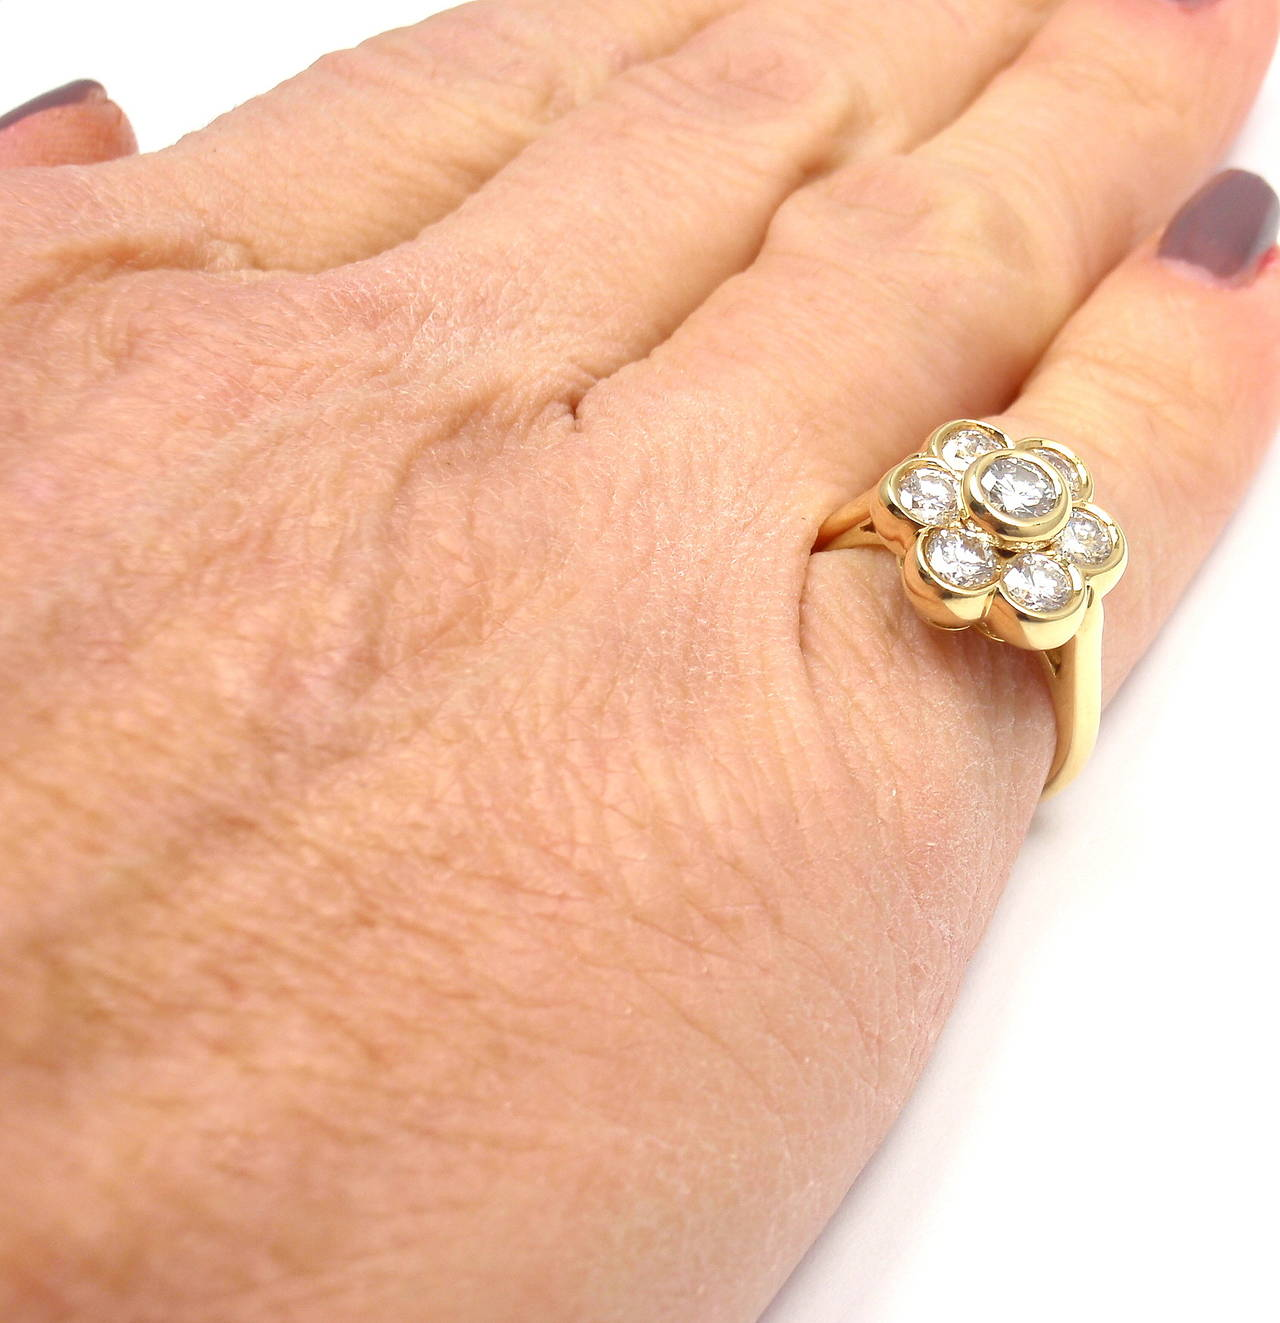 Van Cleef & Arpels Diamond Yellow Gold Fleurette Flower Ring For Sale 6